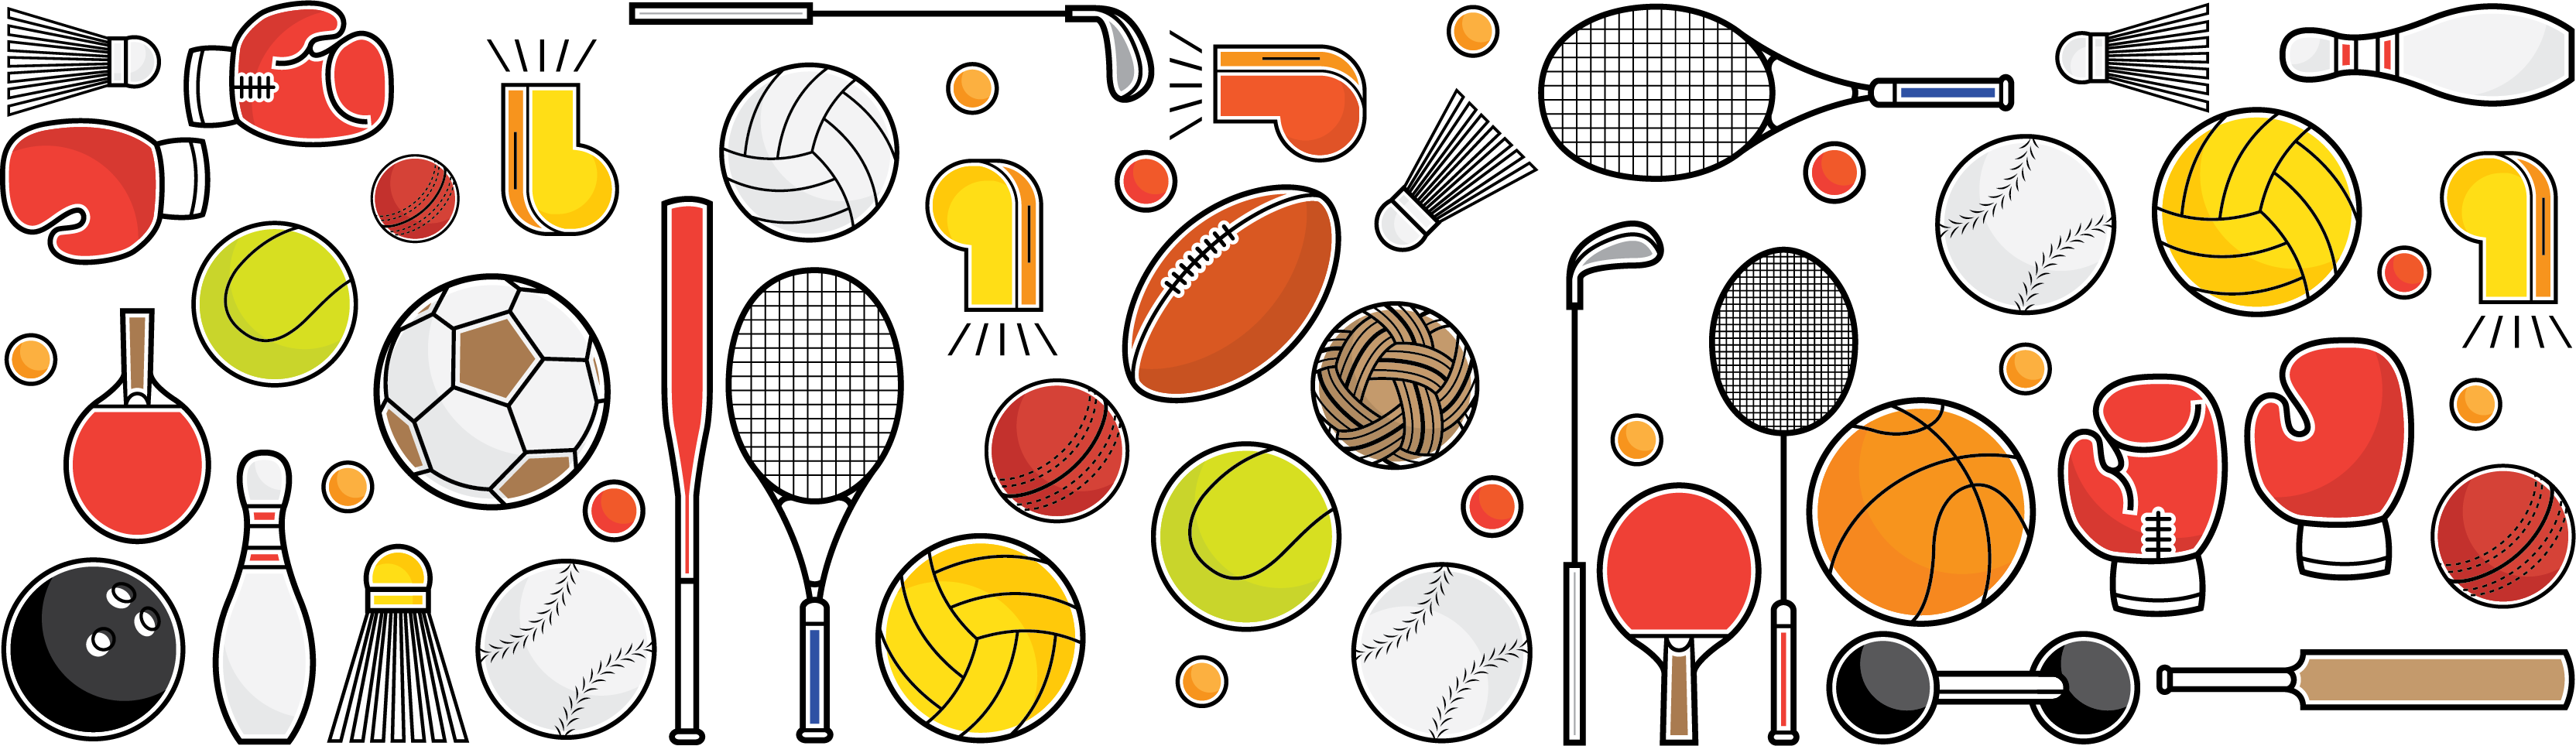 Graphic collage of different types of sports equipment